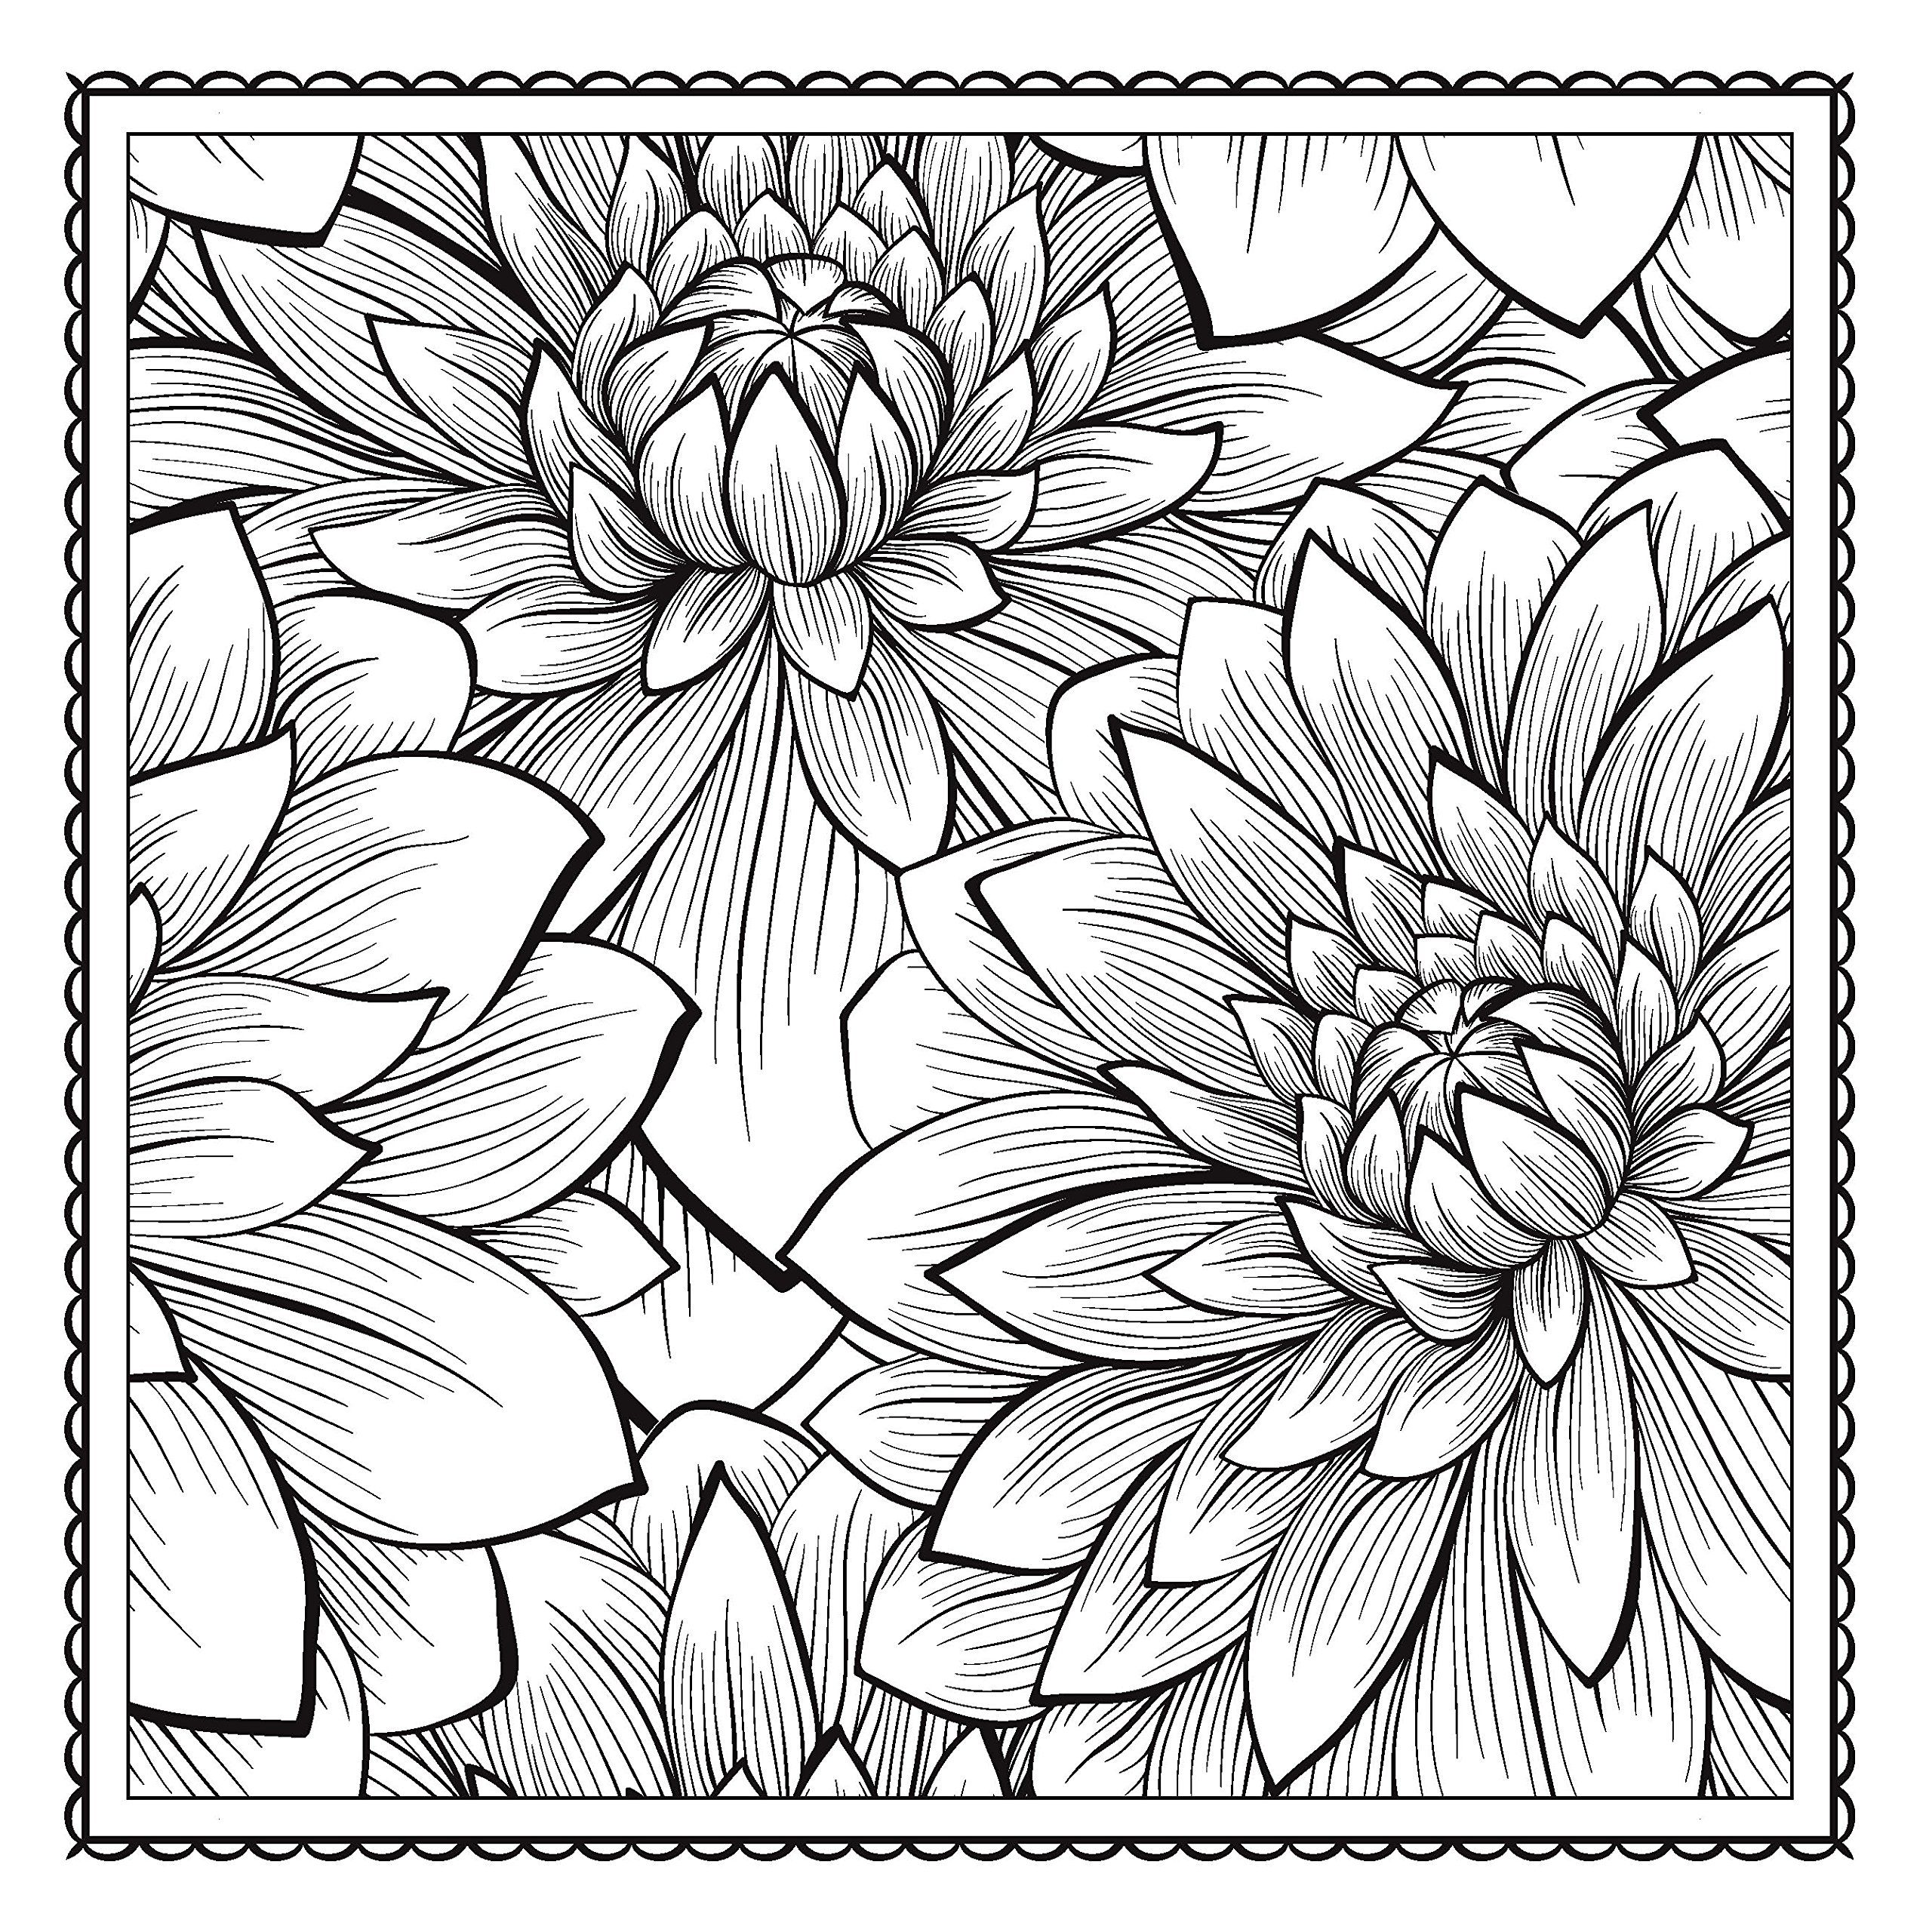 Blossom magic beautiful floral patterns coloring book for adults